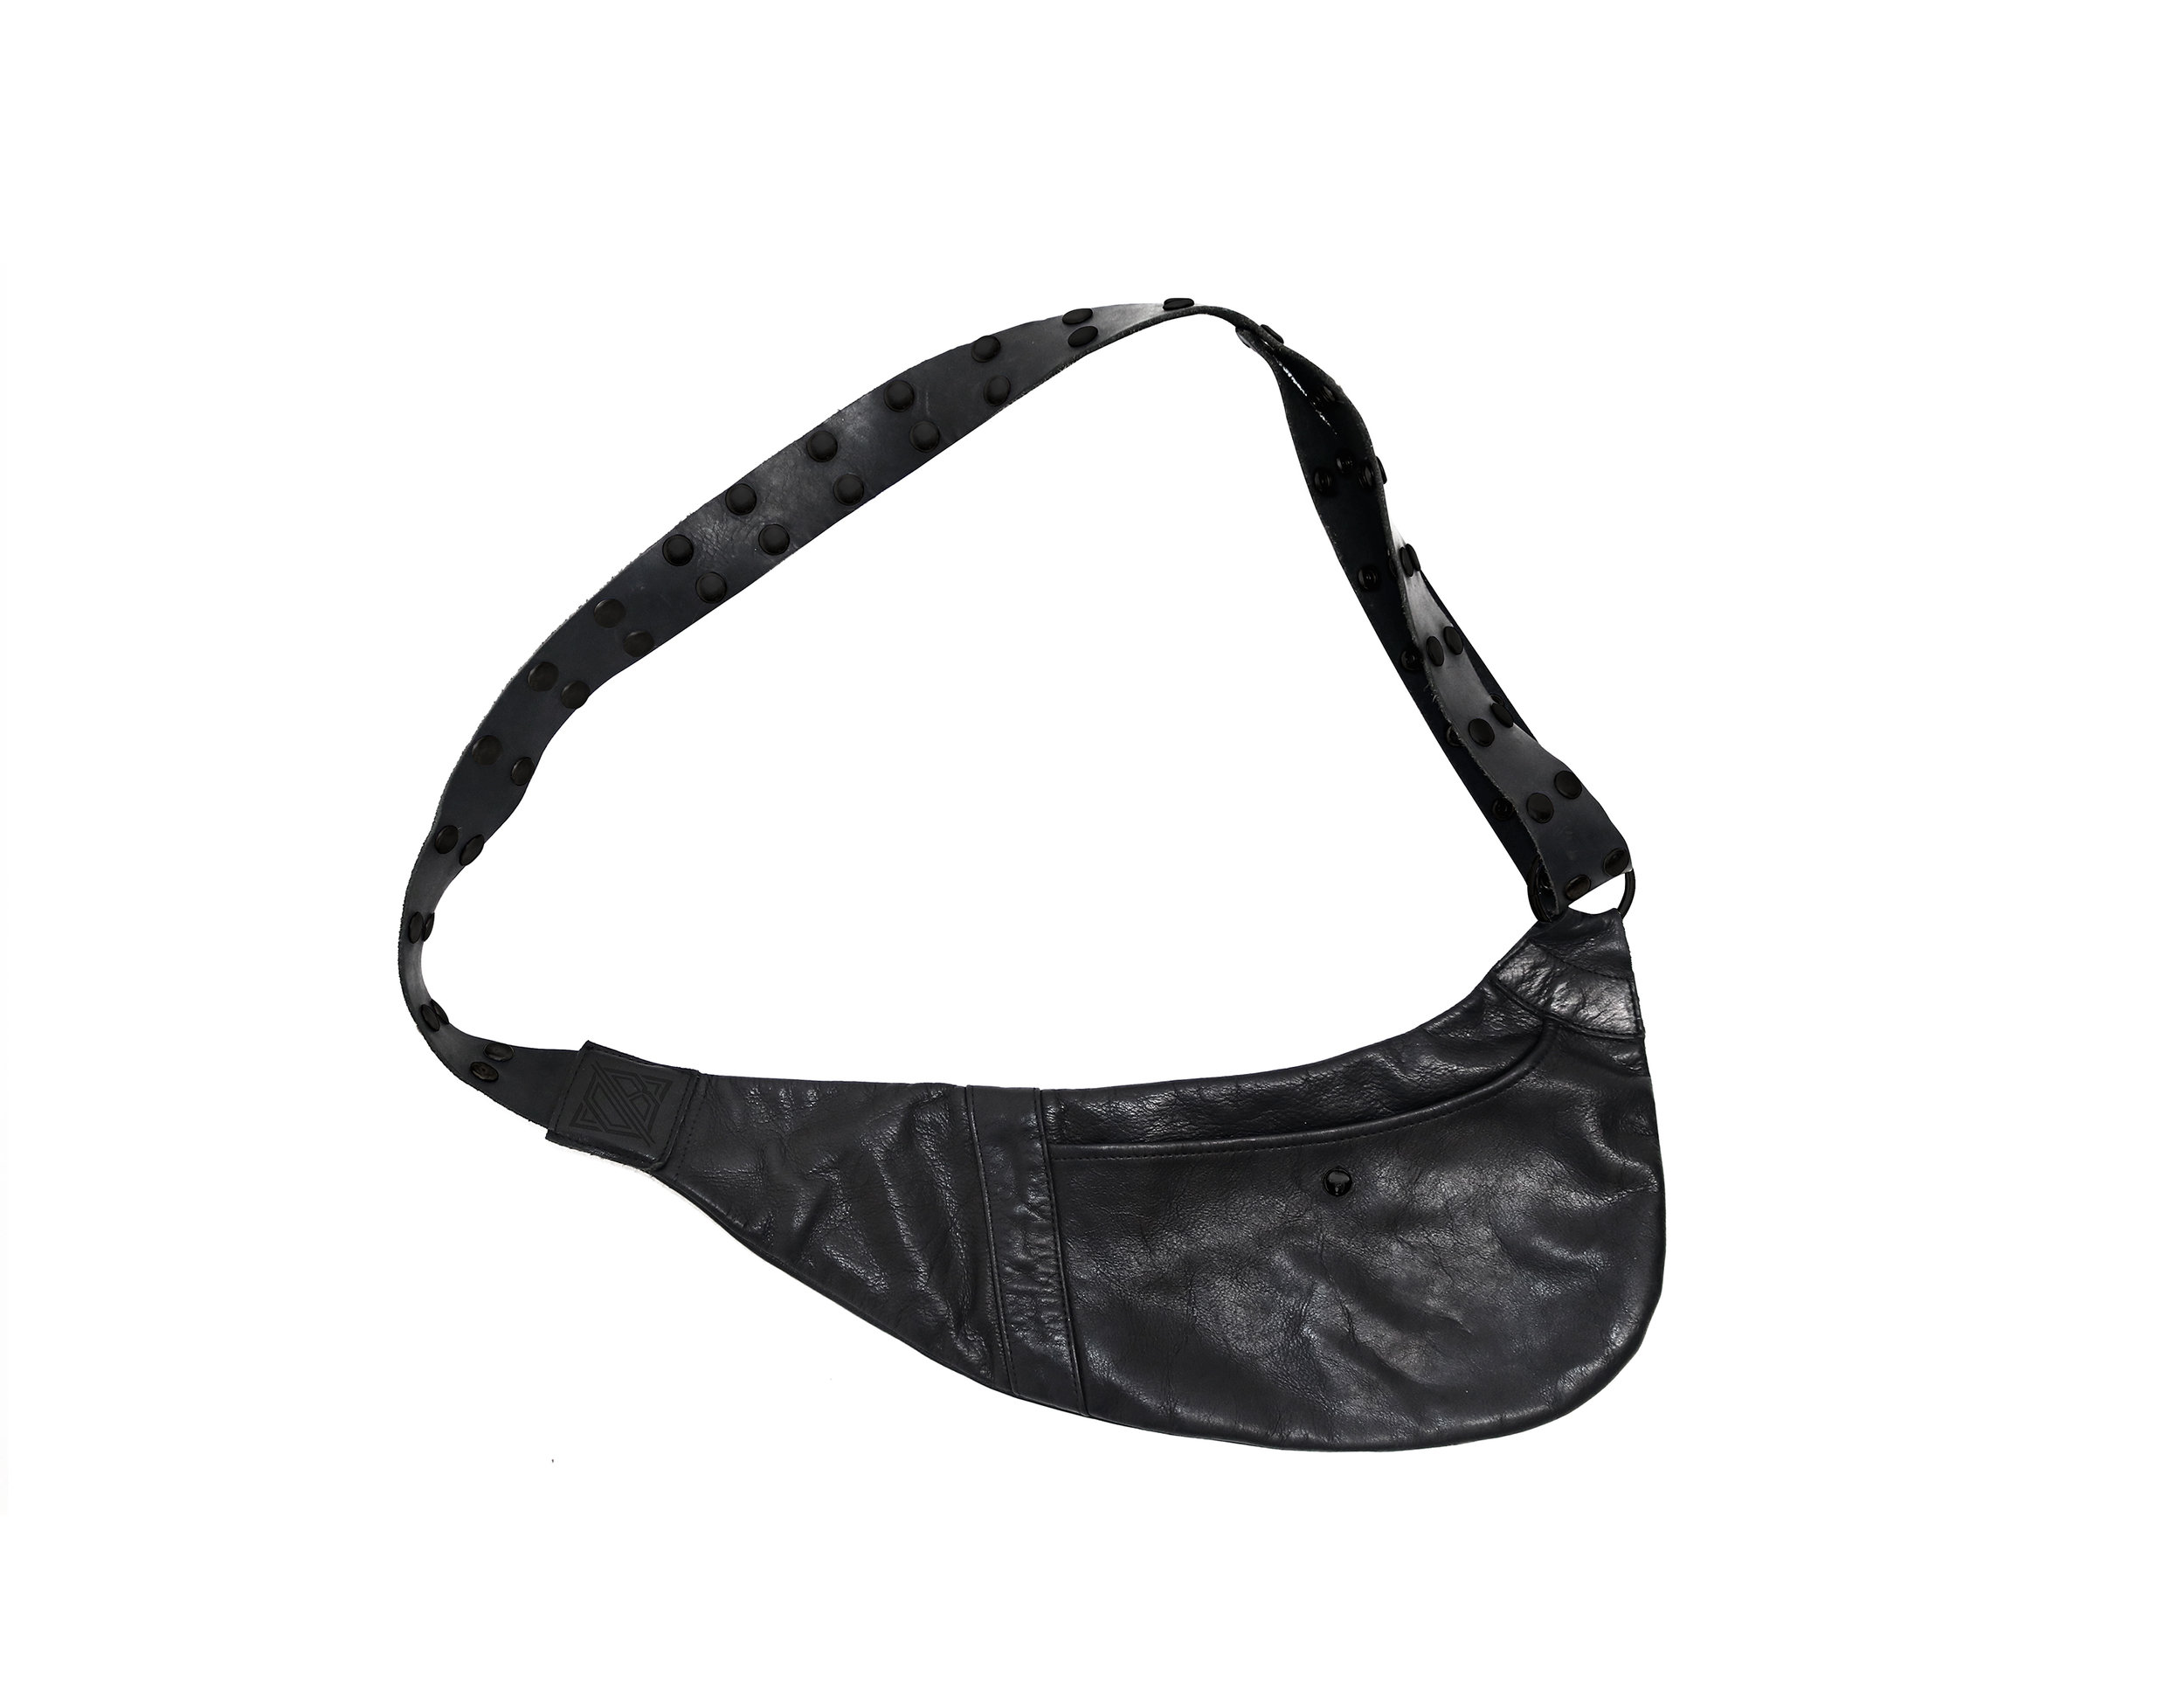 dirtbags sling bags$275 - all black with black hardware